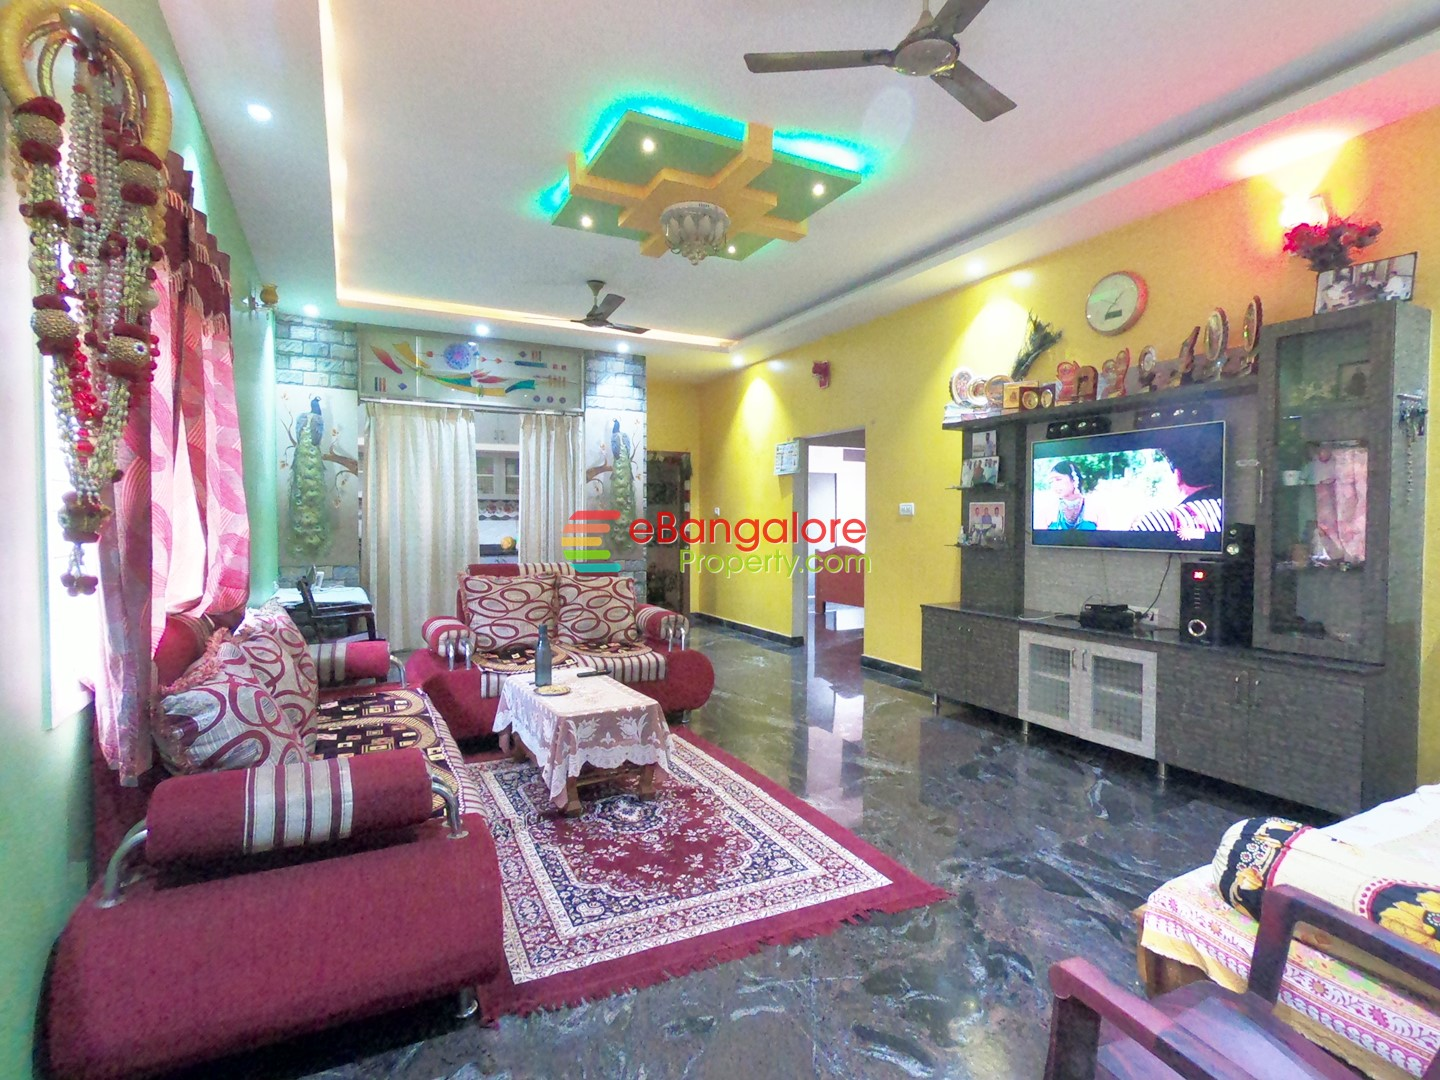 Peenya Ext Andrahalli – 5 Unit Building For Sale on 30×40 – Semifurnished